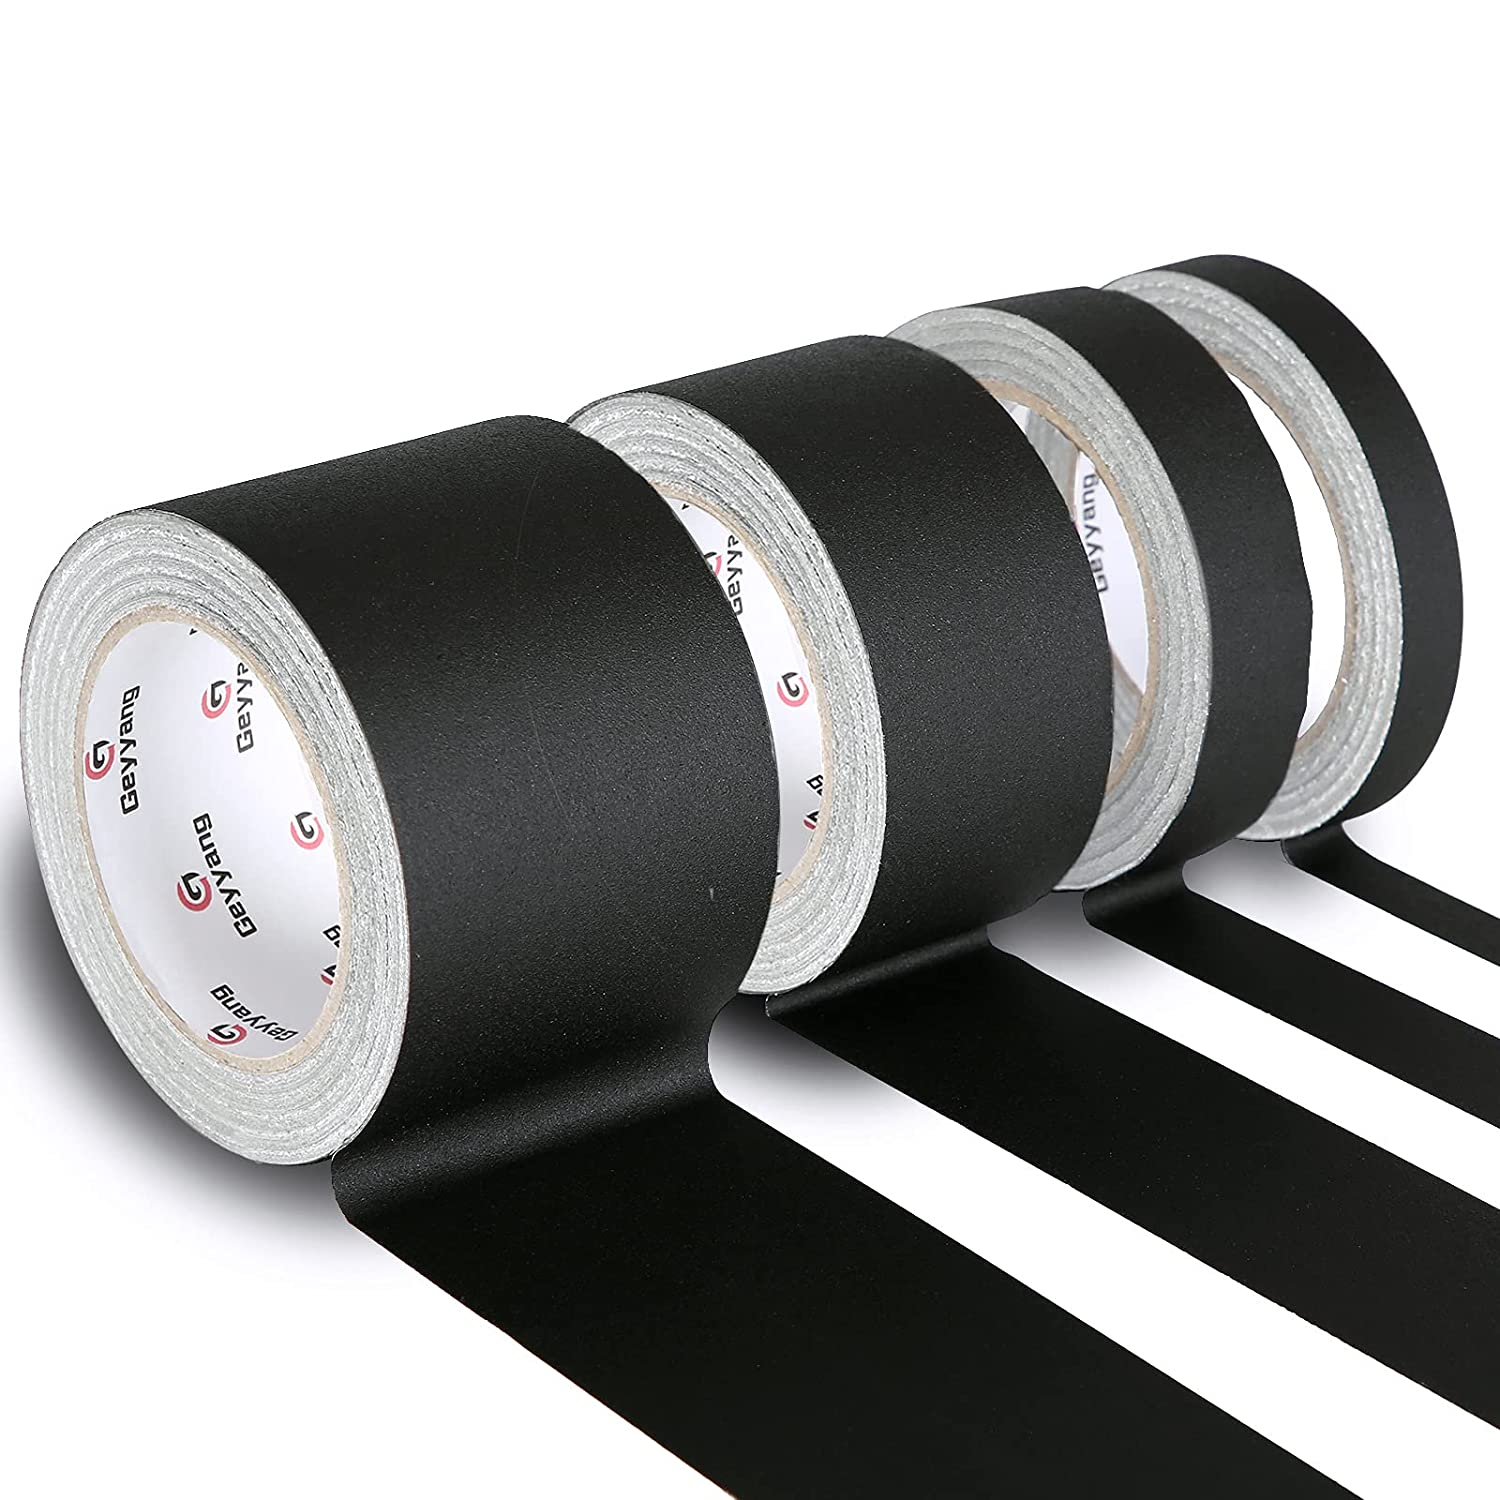 4 Max 87% OFF Pack Gaffers Tape 0.6